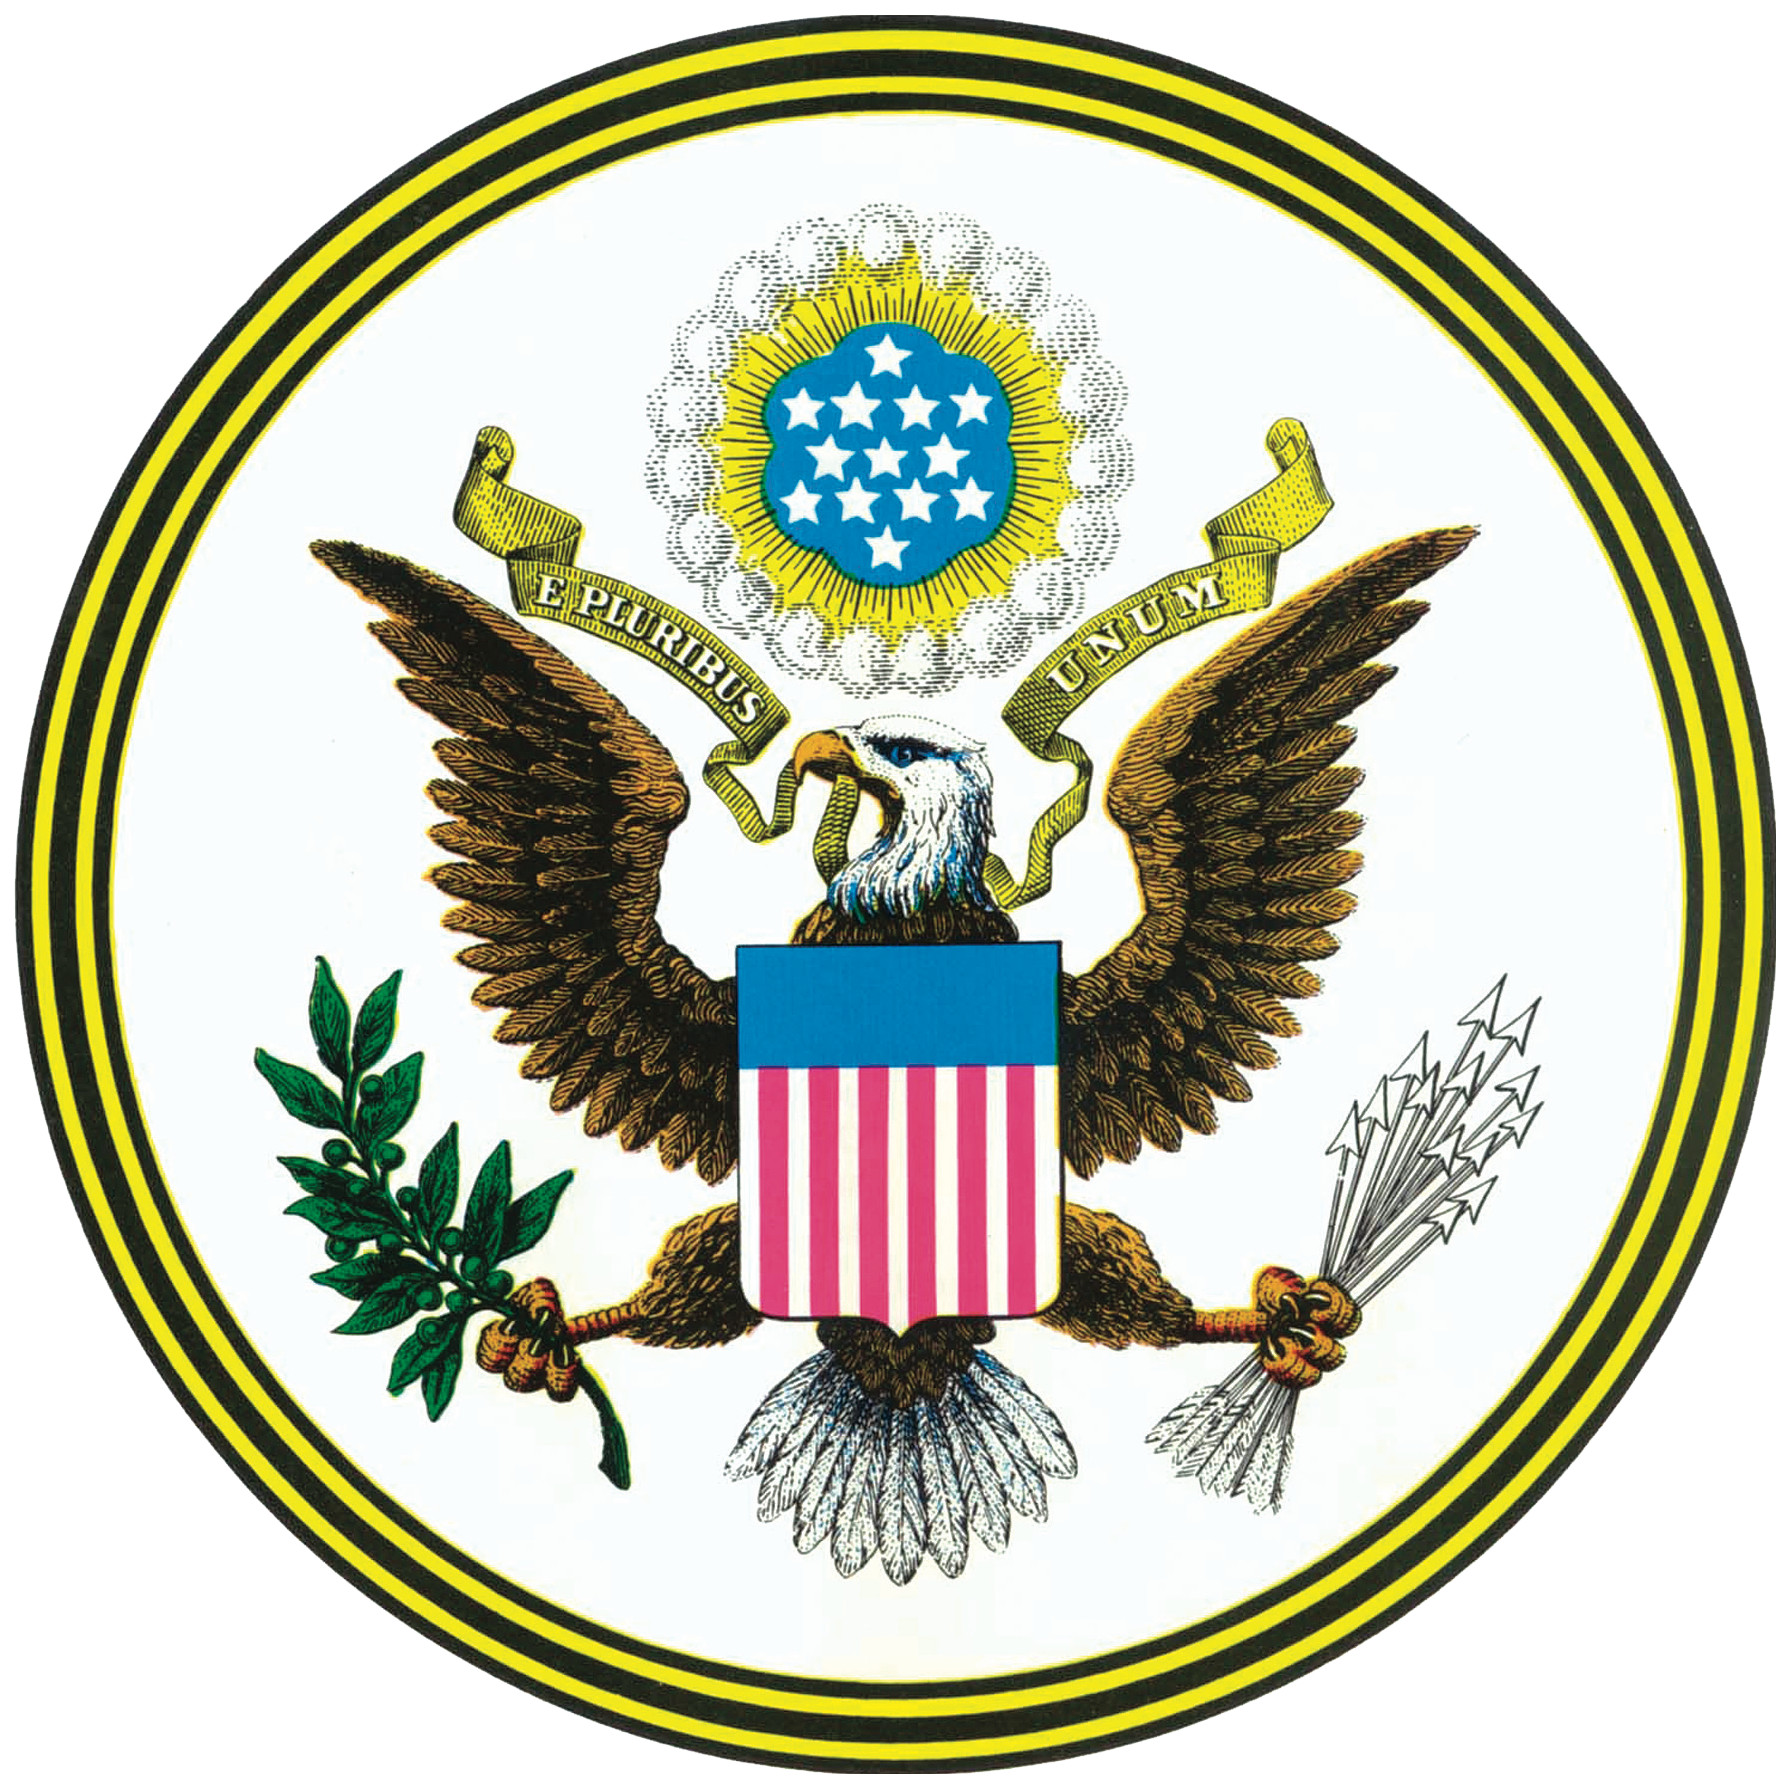 The hidden symbolism of the Great Seal of the United States